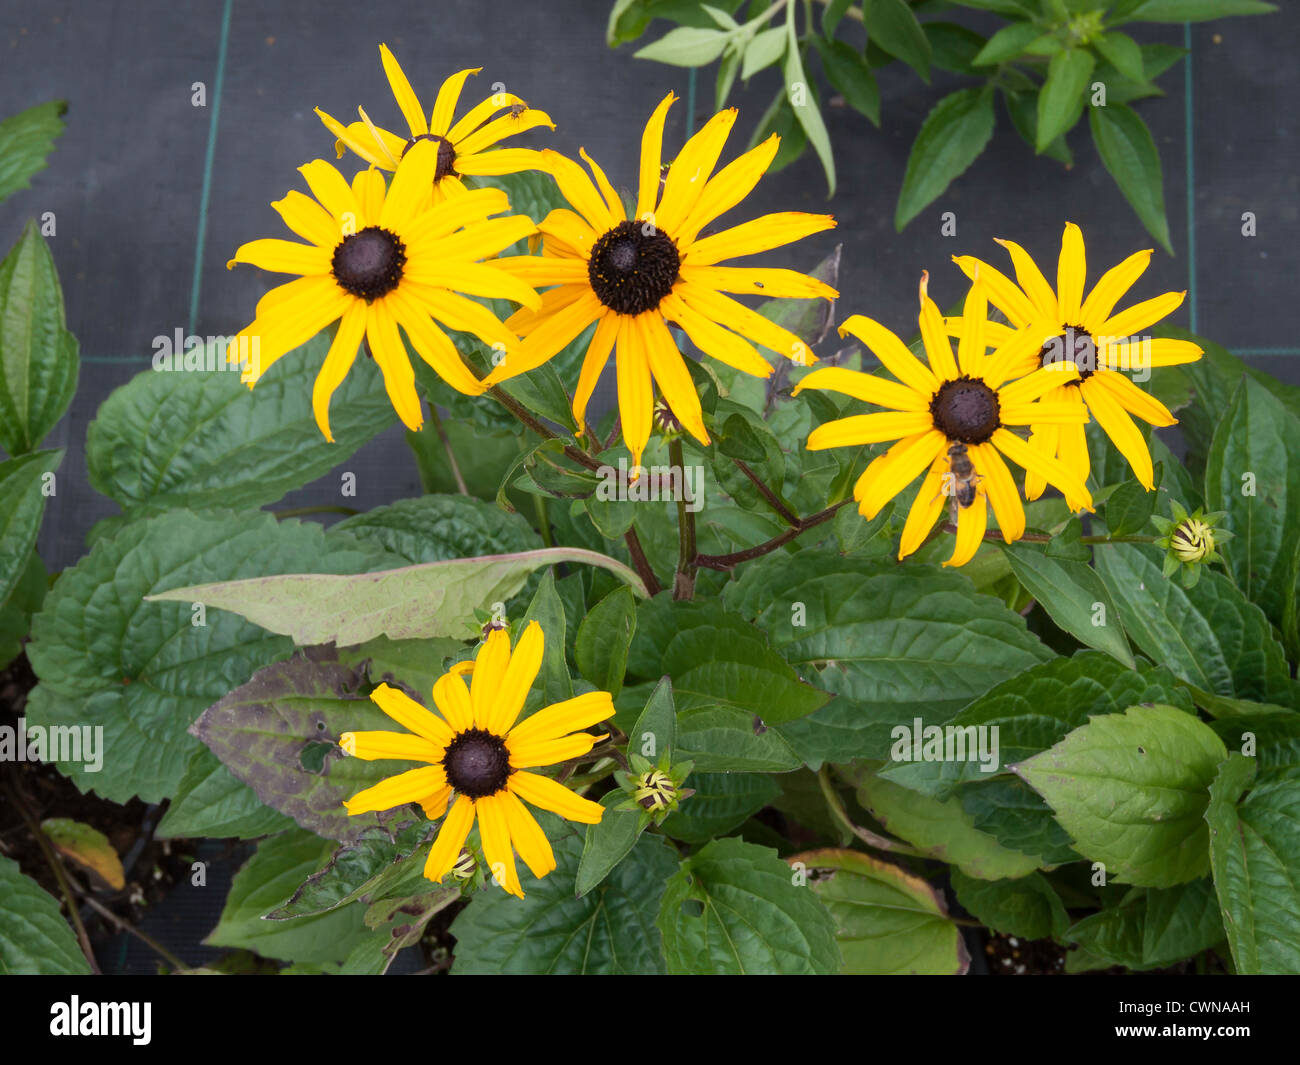 Bright yellow daisy like flowers of rudbeckia goldstrum a hardy bright yellow daisy like flowers of rudbeckia goldstrum a hardy perennial garden flower mightylinksfo